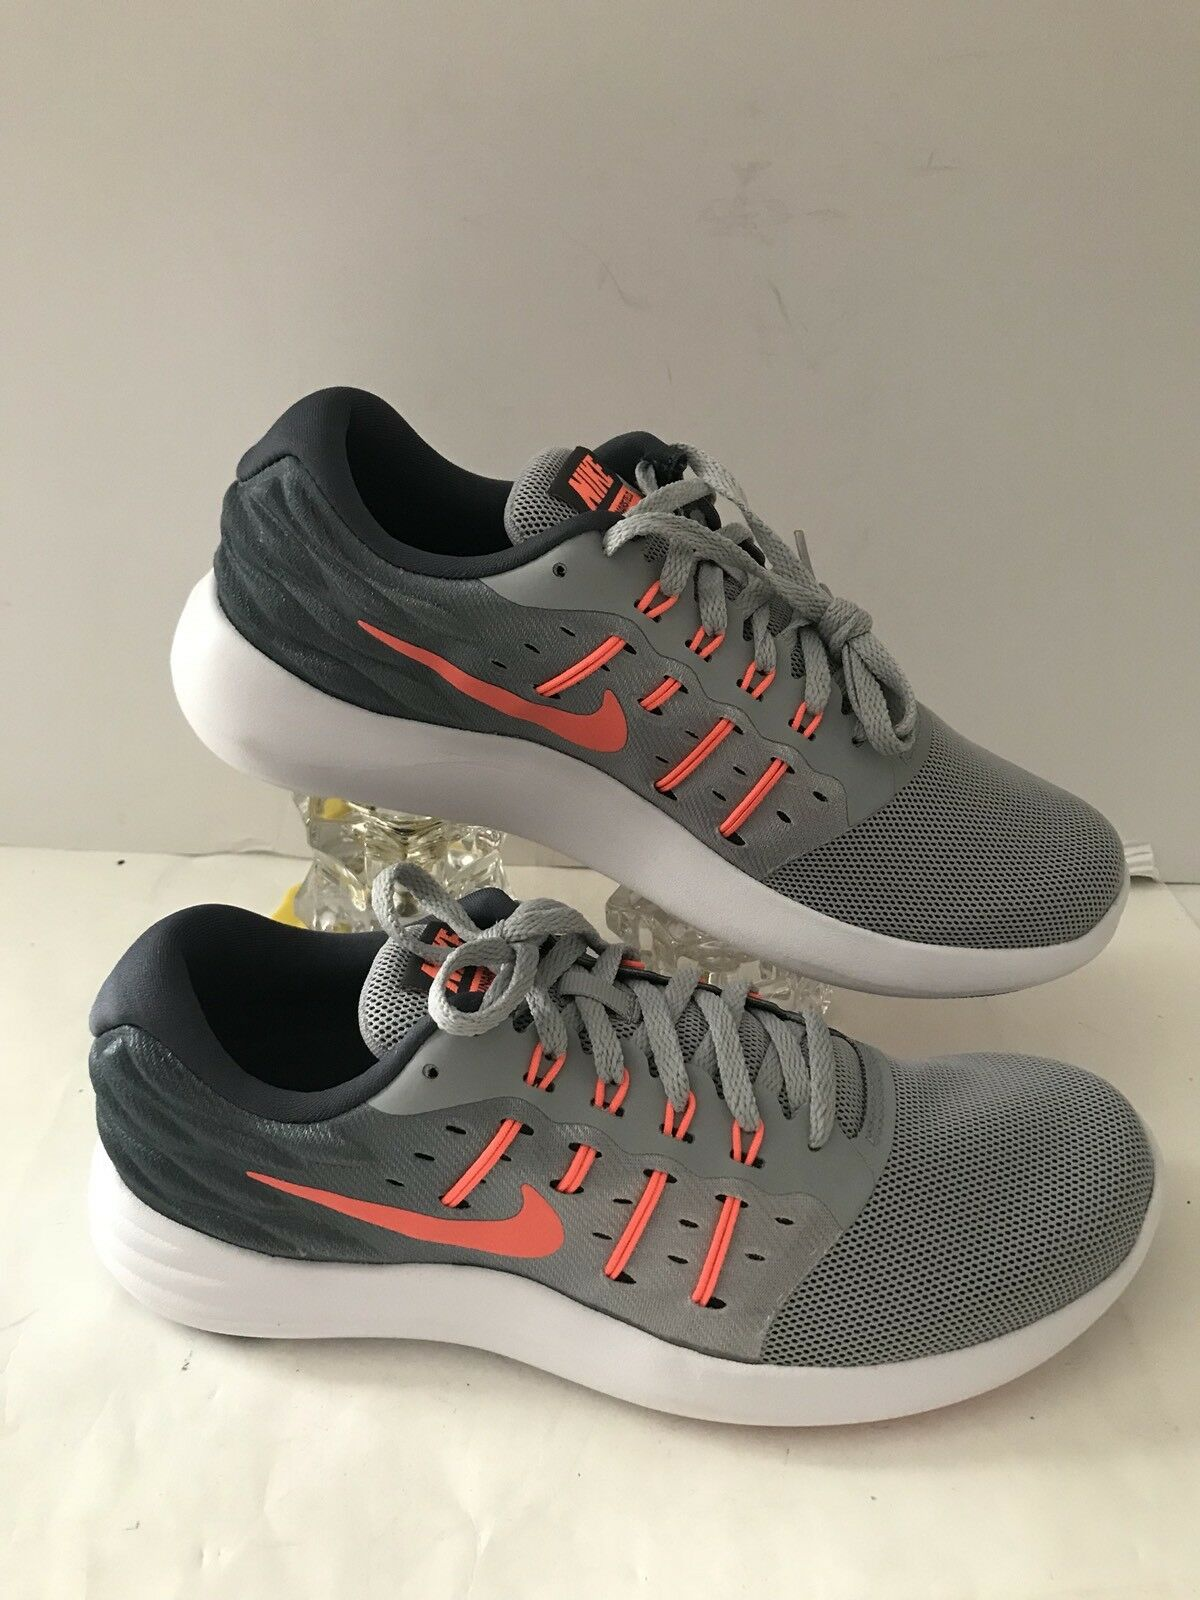 Nike Women's Lunarstelos Grey Plastic/Mesh Running Shoes 8447336 003 Multi Sizes